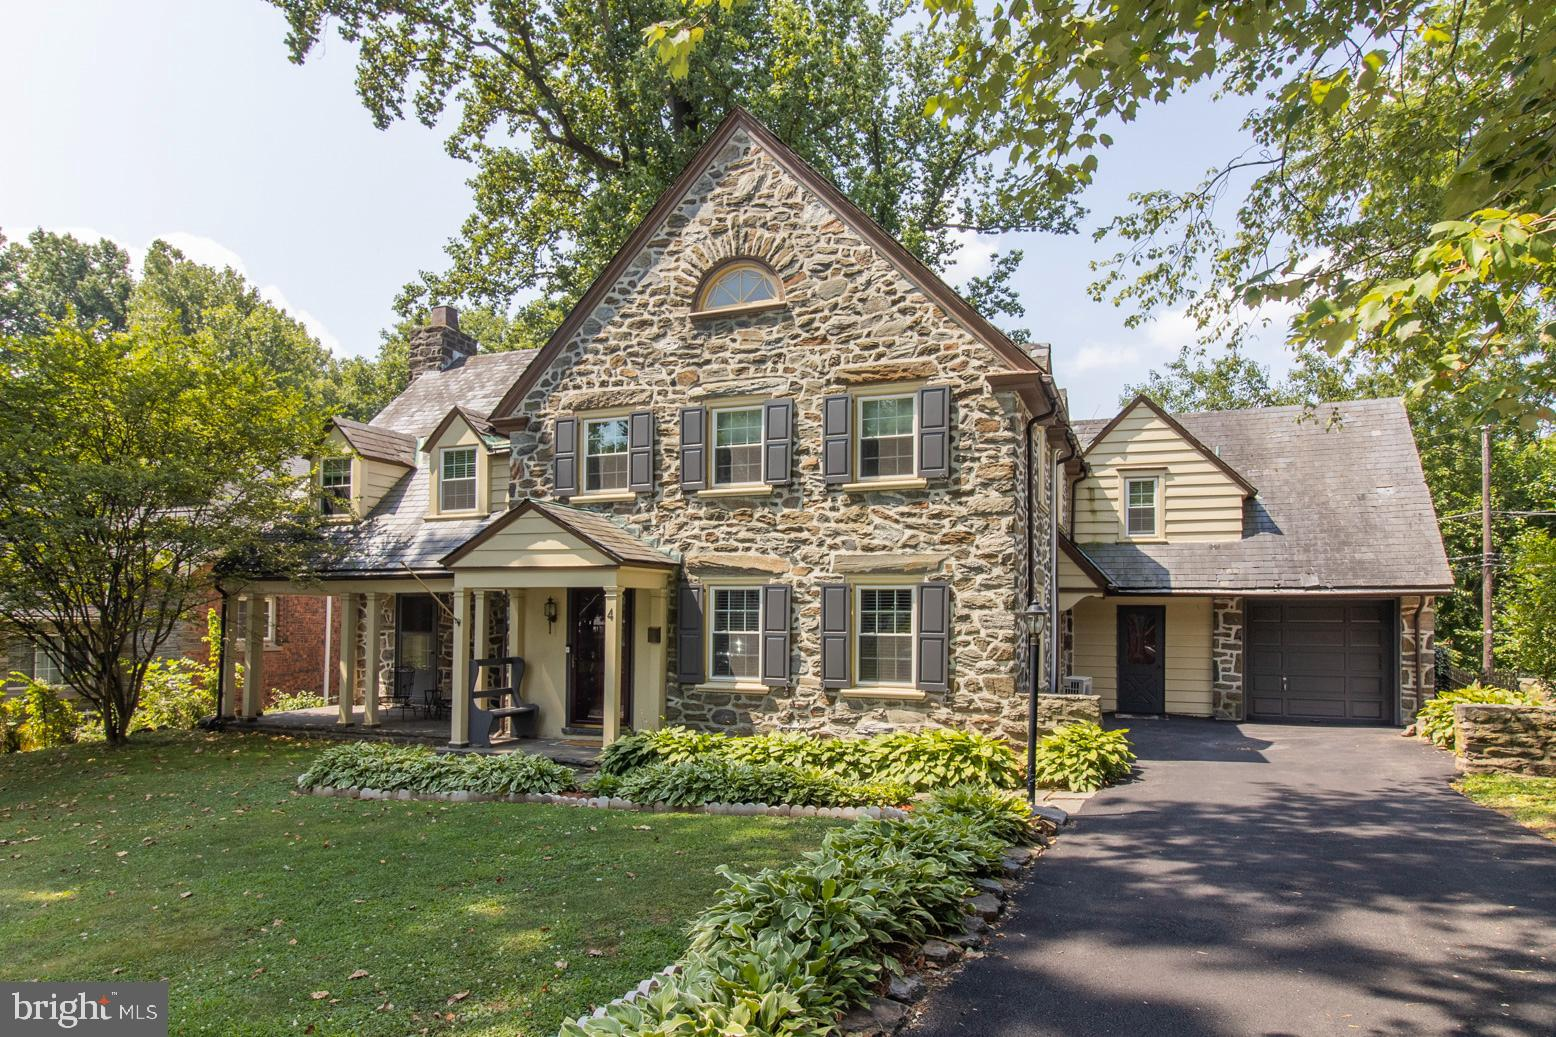 Charm & beauty fill this 5 bedroom 3/2 bath stone Tudor style home in the highly desired Lower Merion School District. Newer windows and doors (2018/2021), newer ductless HVAC system (2019), upgraded/replaced electrical (2017), freshly paved driveway (2021), and so much more! Fall in love with the grand entrance foyer leading to a U-shaped staircase with a beautiful palladian window.  Formal living room features a fireplace with a bonus room which makes a great office or playroom, and also leads to a covered front porch. Spacious formal dining room with wainscoting & crown molding, updated eat-in kitchen. Off the kitchen is a laundry room/mudroom, with an entrance from the driveway. The kitchen leads to the fenced-in backyard with deck and patio. Completing the first floor is a powder room. There is also a back staircase leading to the 5th bedroom that has its own bathroom and large closet - perfect in-law or au-pair suite. This bedroom can also be accessed through the 4th bedroom. The large master bedroom has 2 closets, an office nook, and en suite bathroom. 3 other bedrooms and a shared double vanity bathroom share the second floor landing along with pull down access to a very large stand up attic with finished floor and a walk in cedar closet. There are 2 staircases leading to the large finished basement with 2 rooms - one with a built-in bar and the other a perfect movie room, and a powder room. Home is 2882 sq ft plus the finished 700 sq ft basement. Located just blocks from Penn Wynne Library, Penn Wynne Elementary, multiple parks and shops. Slate roof currently being repaired and will be certified!